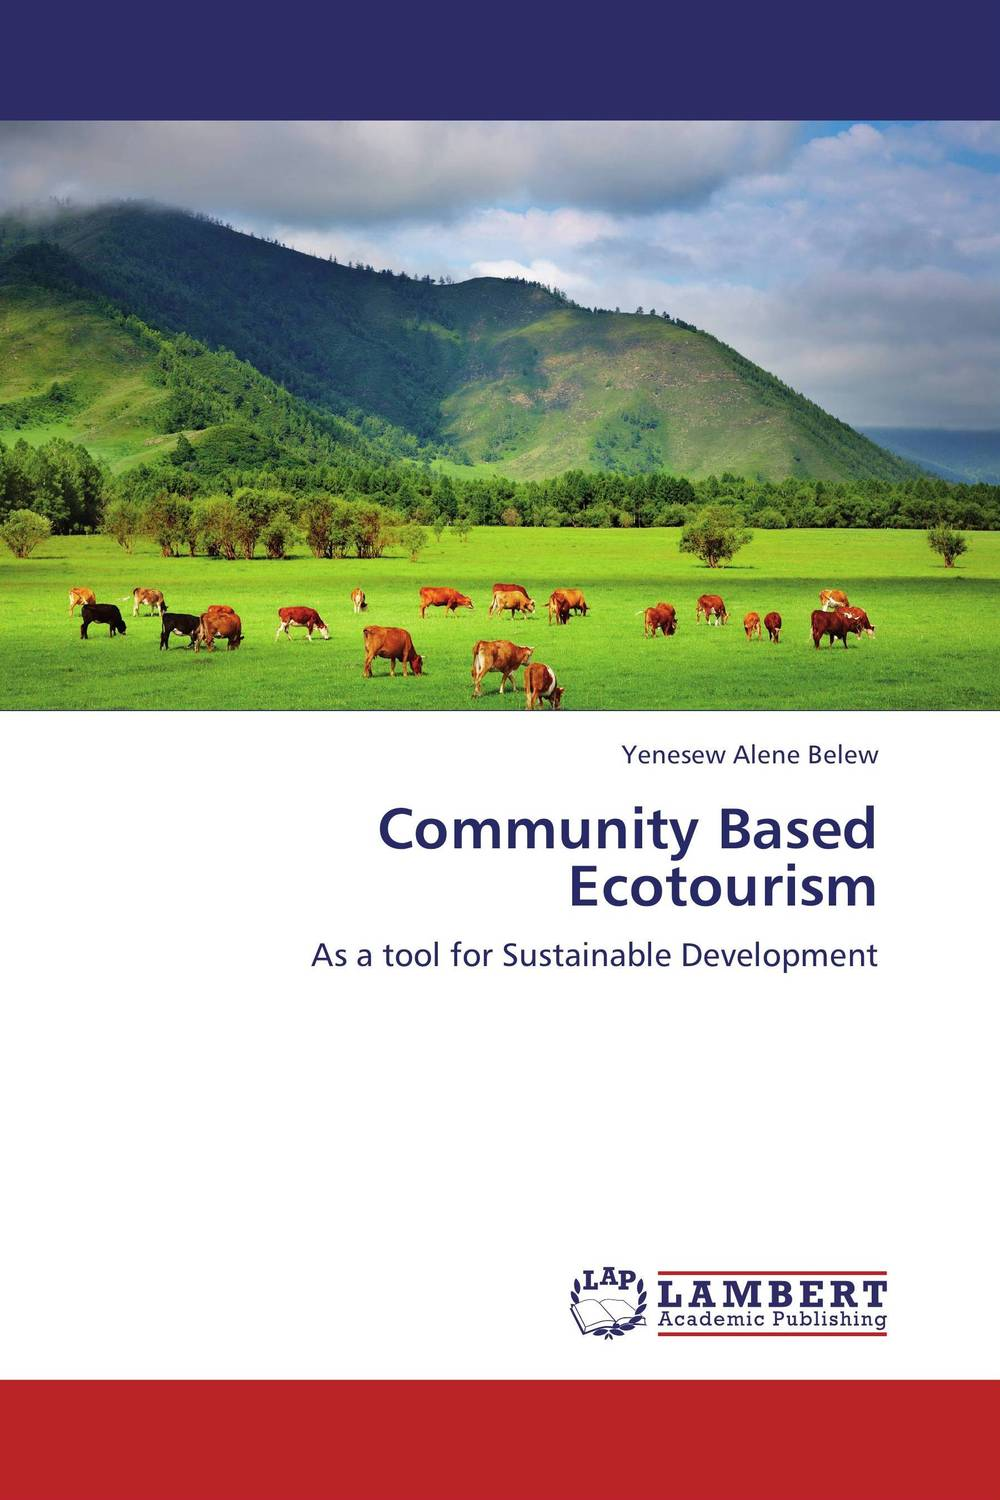 все цены на Community Based Ecotourism онлайн